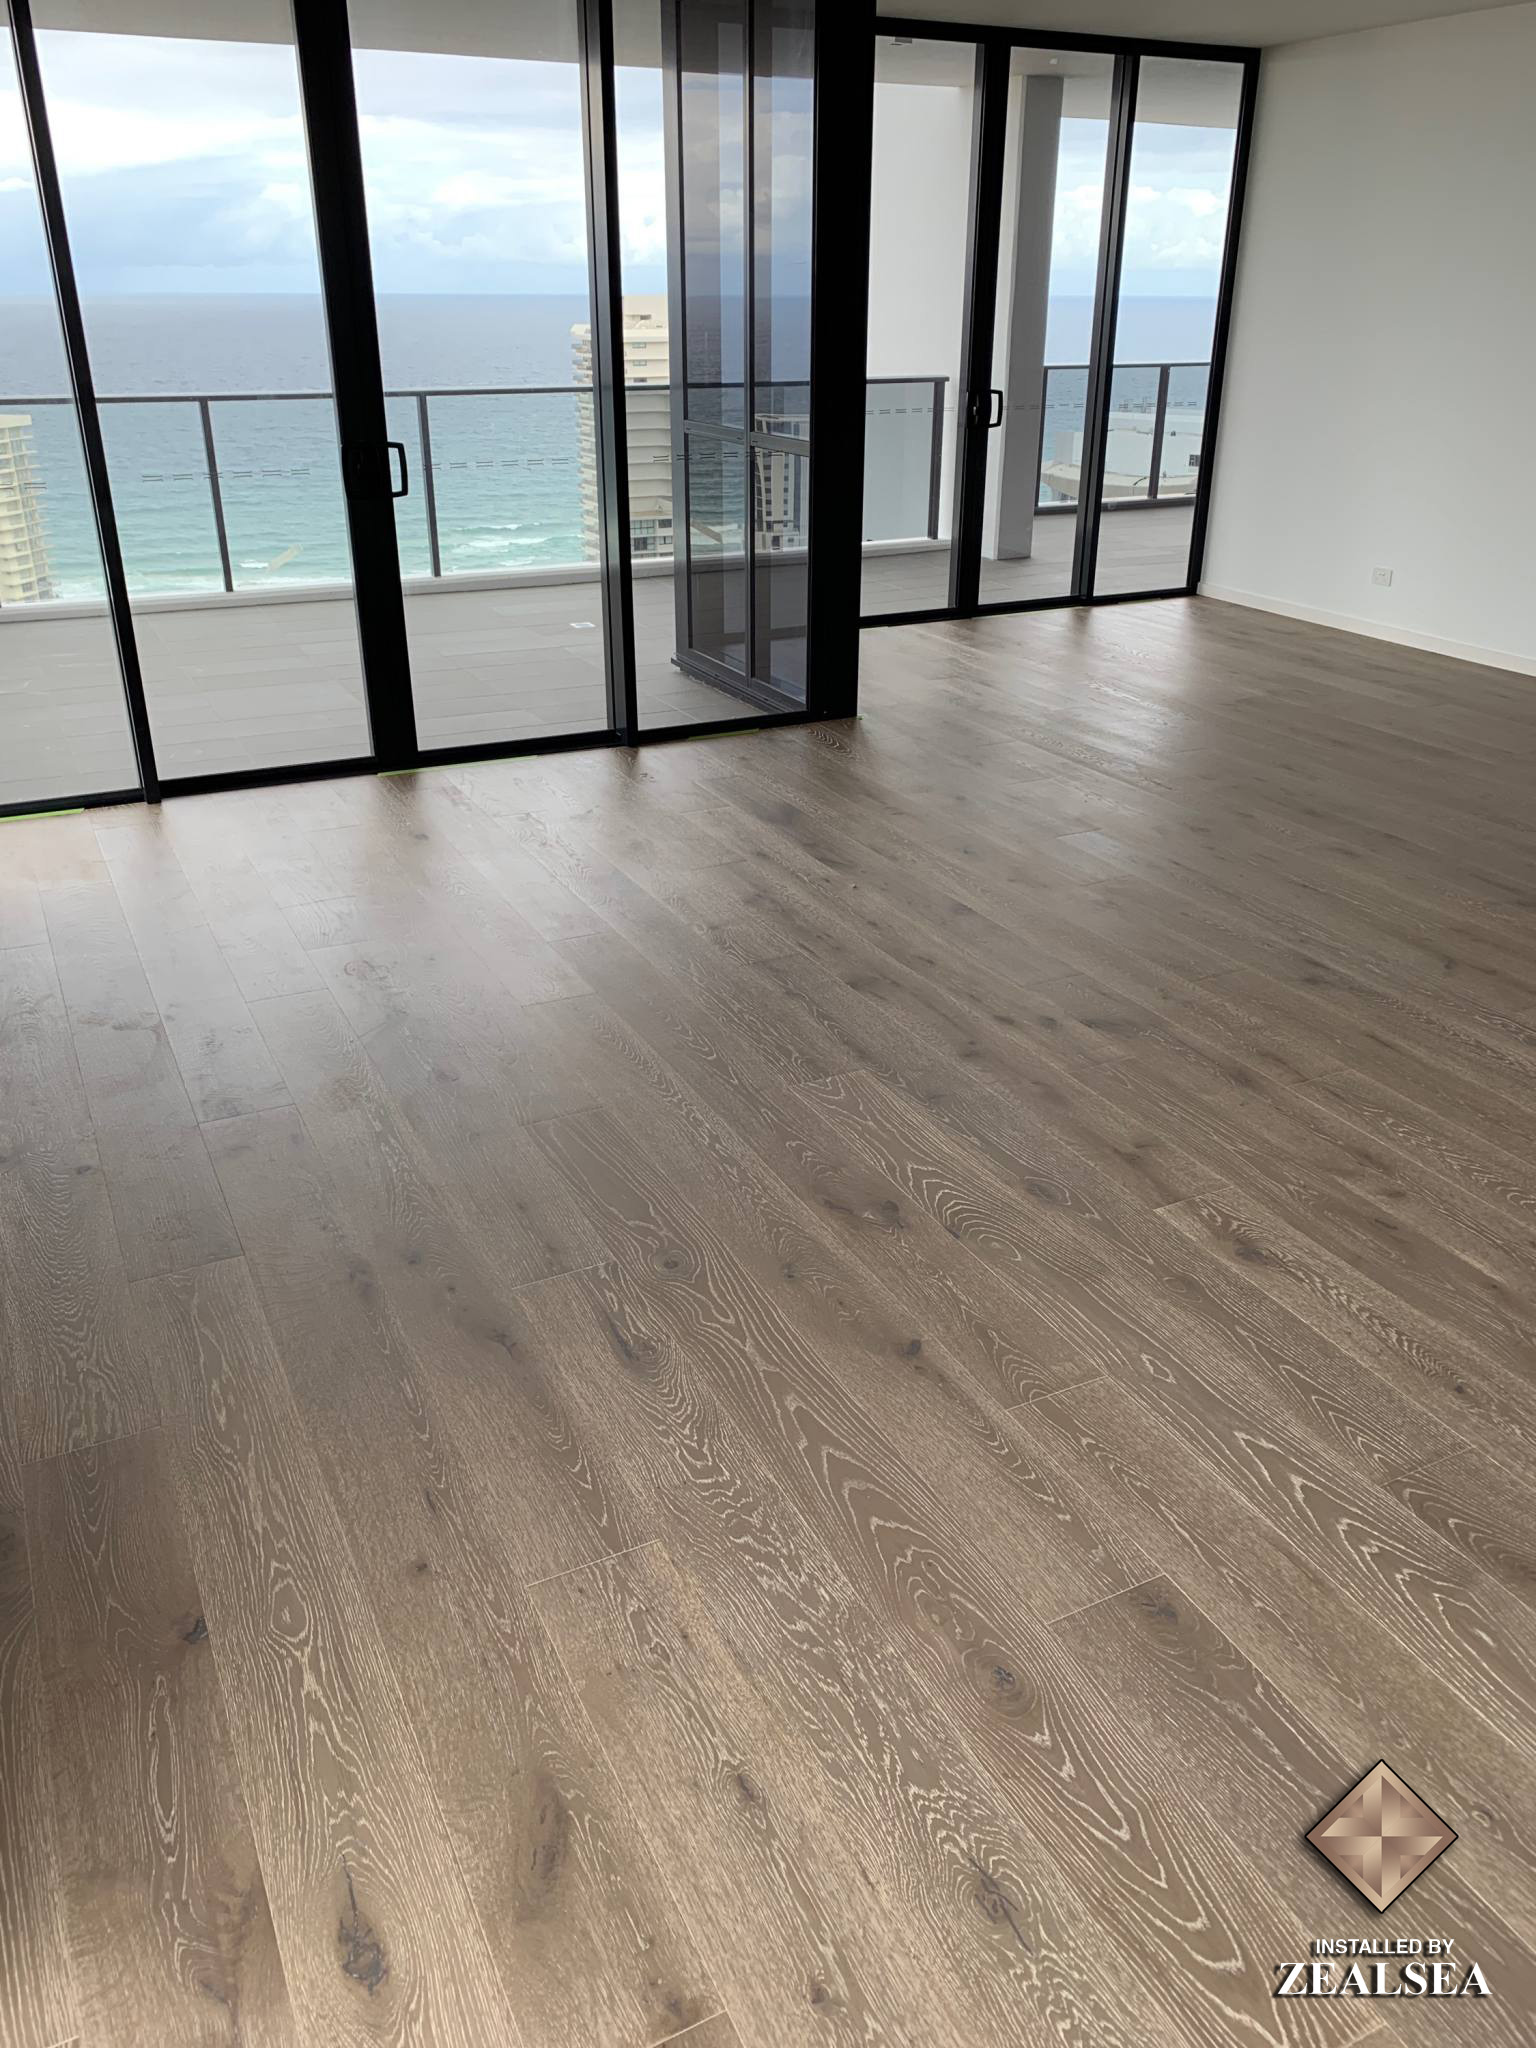 zealsea timber flooring professional installation broadbeach coswick grey cashmere 1